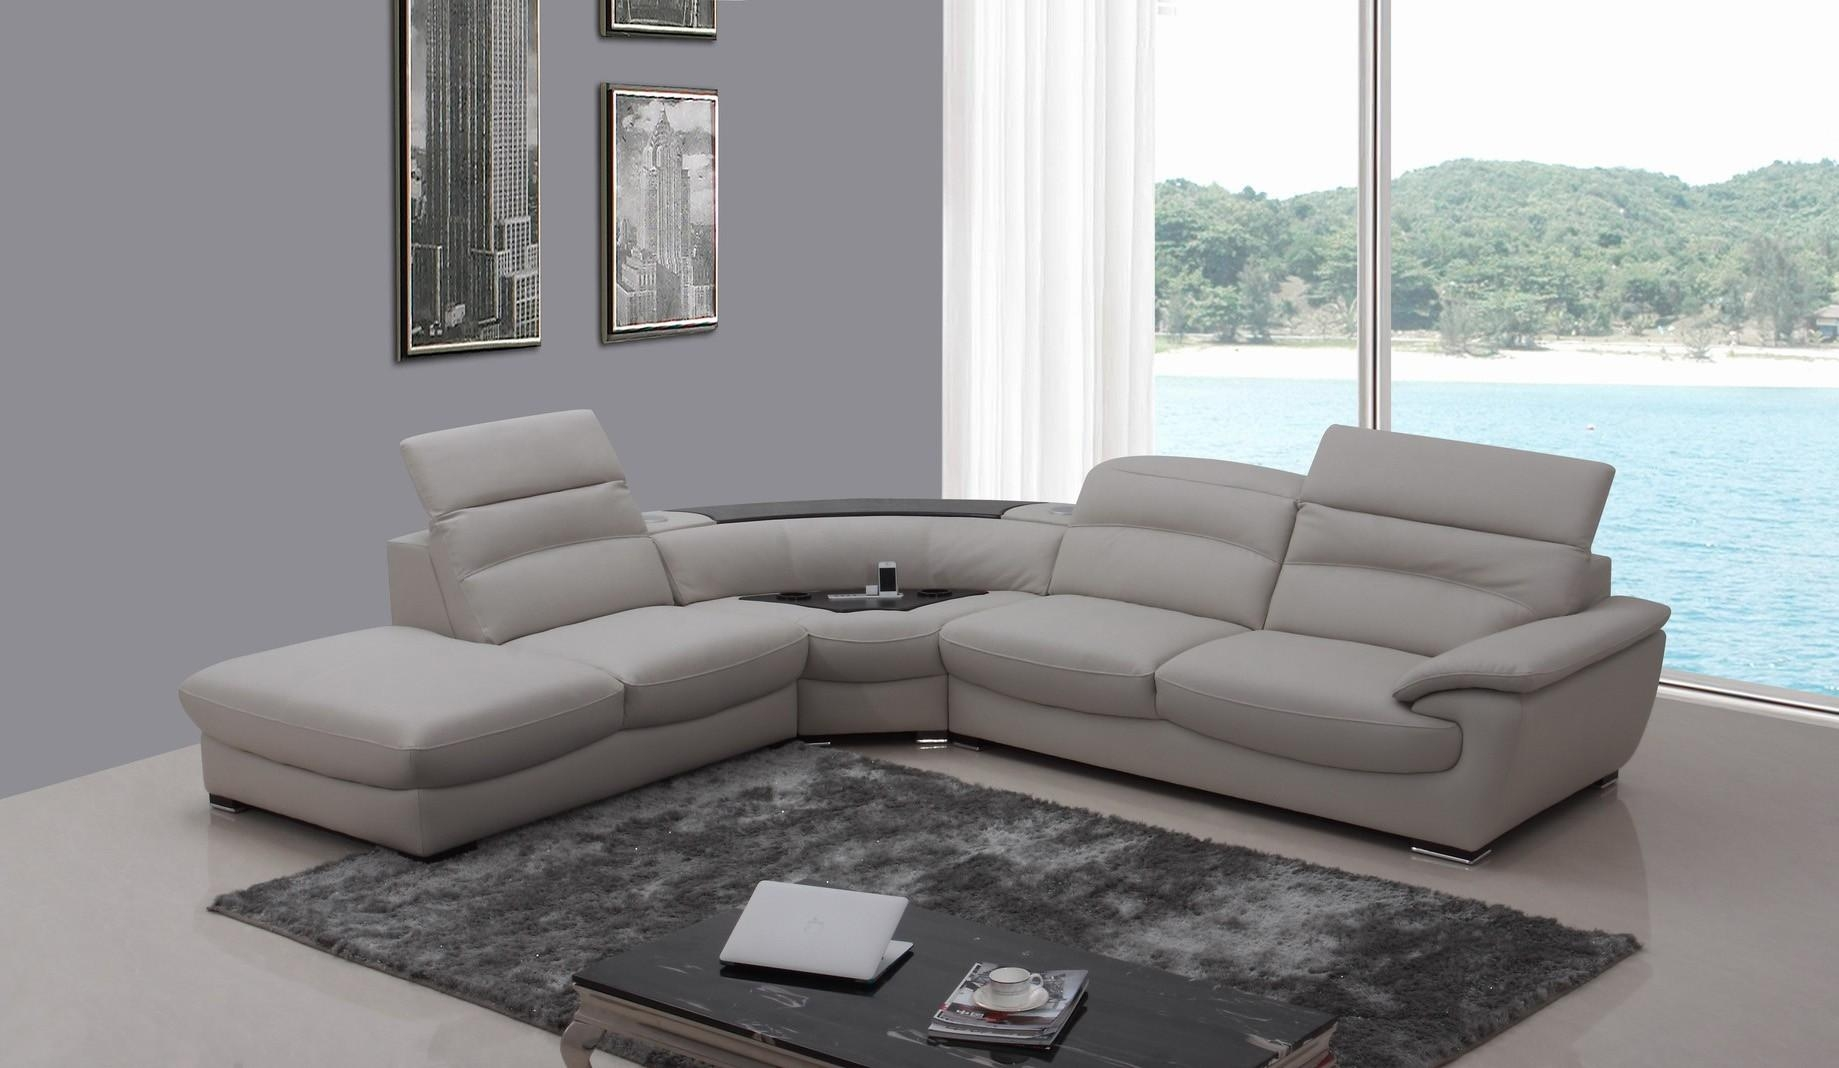 Sofas Center : Italian Leather Sectional Sofa Winston Contemporary Within Italian Leather Sectionals Contemporary (View 8 of 20)